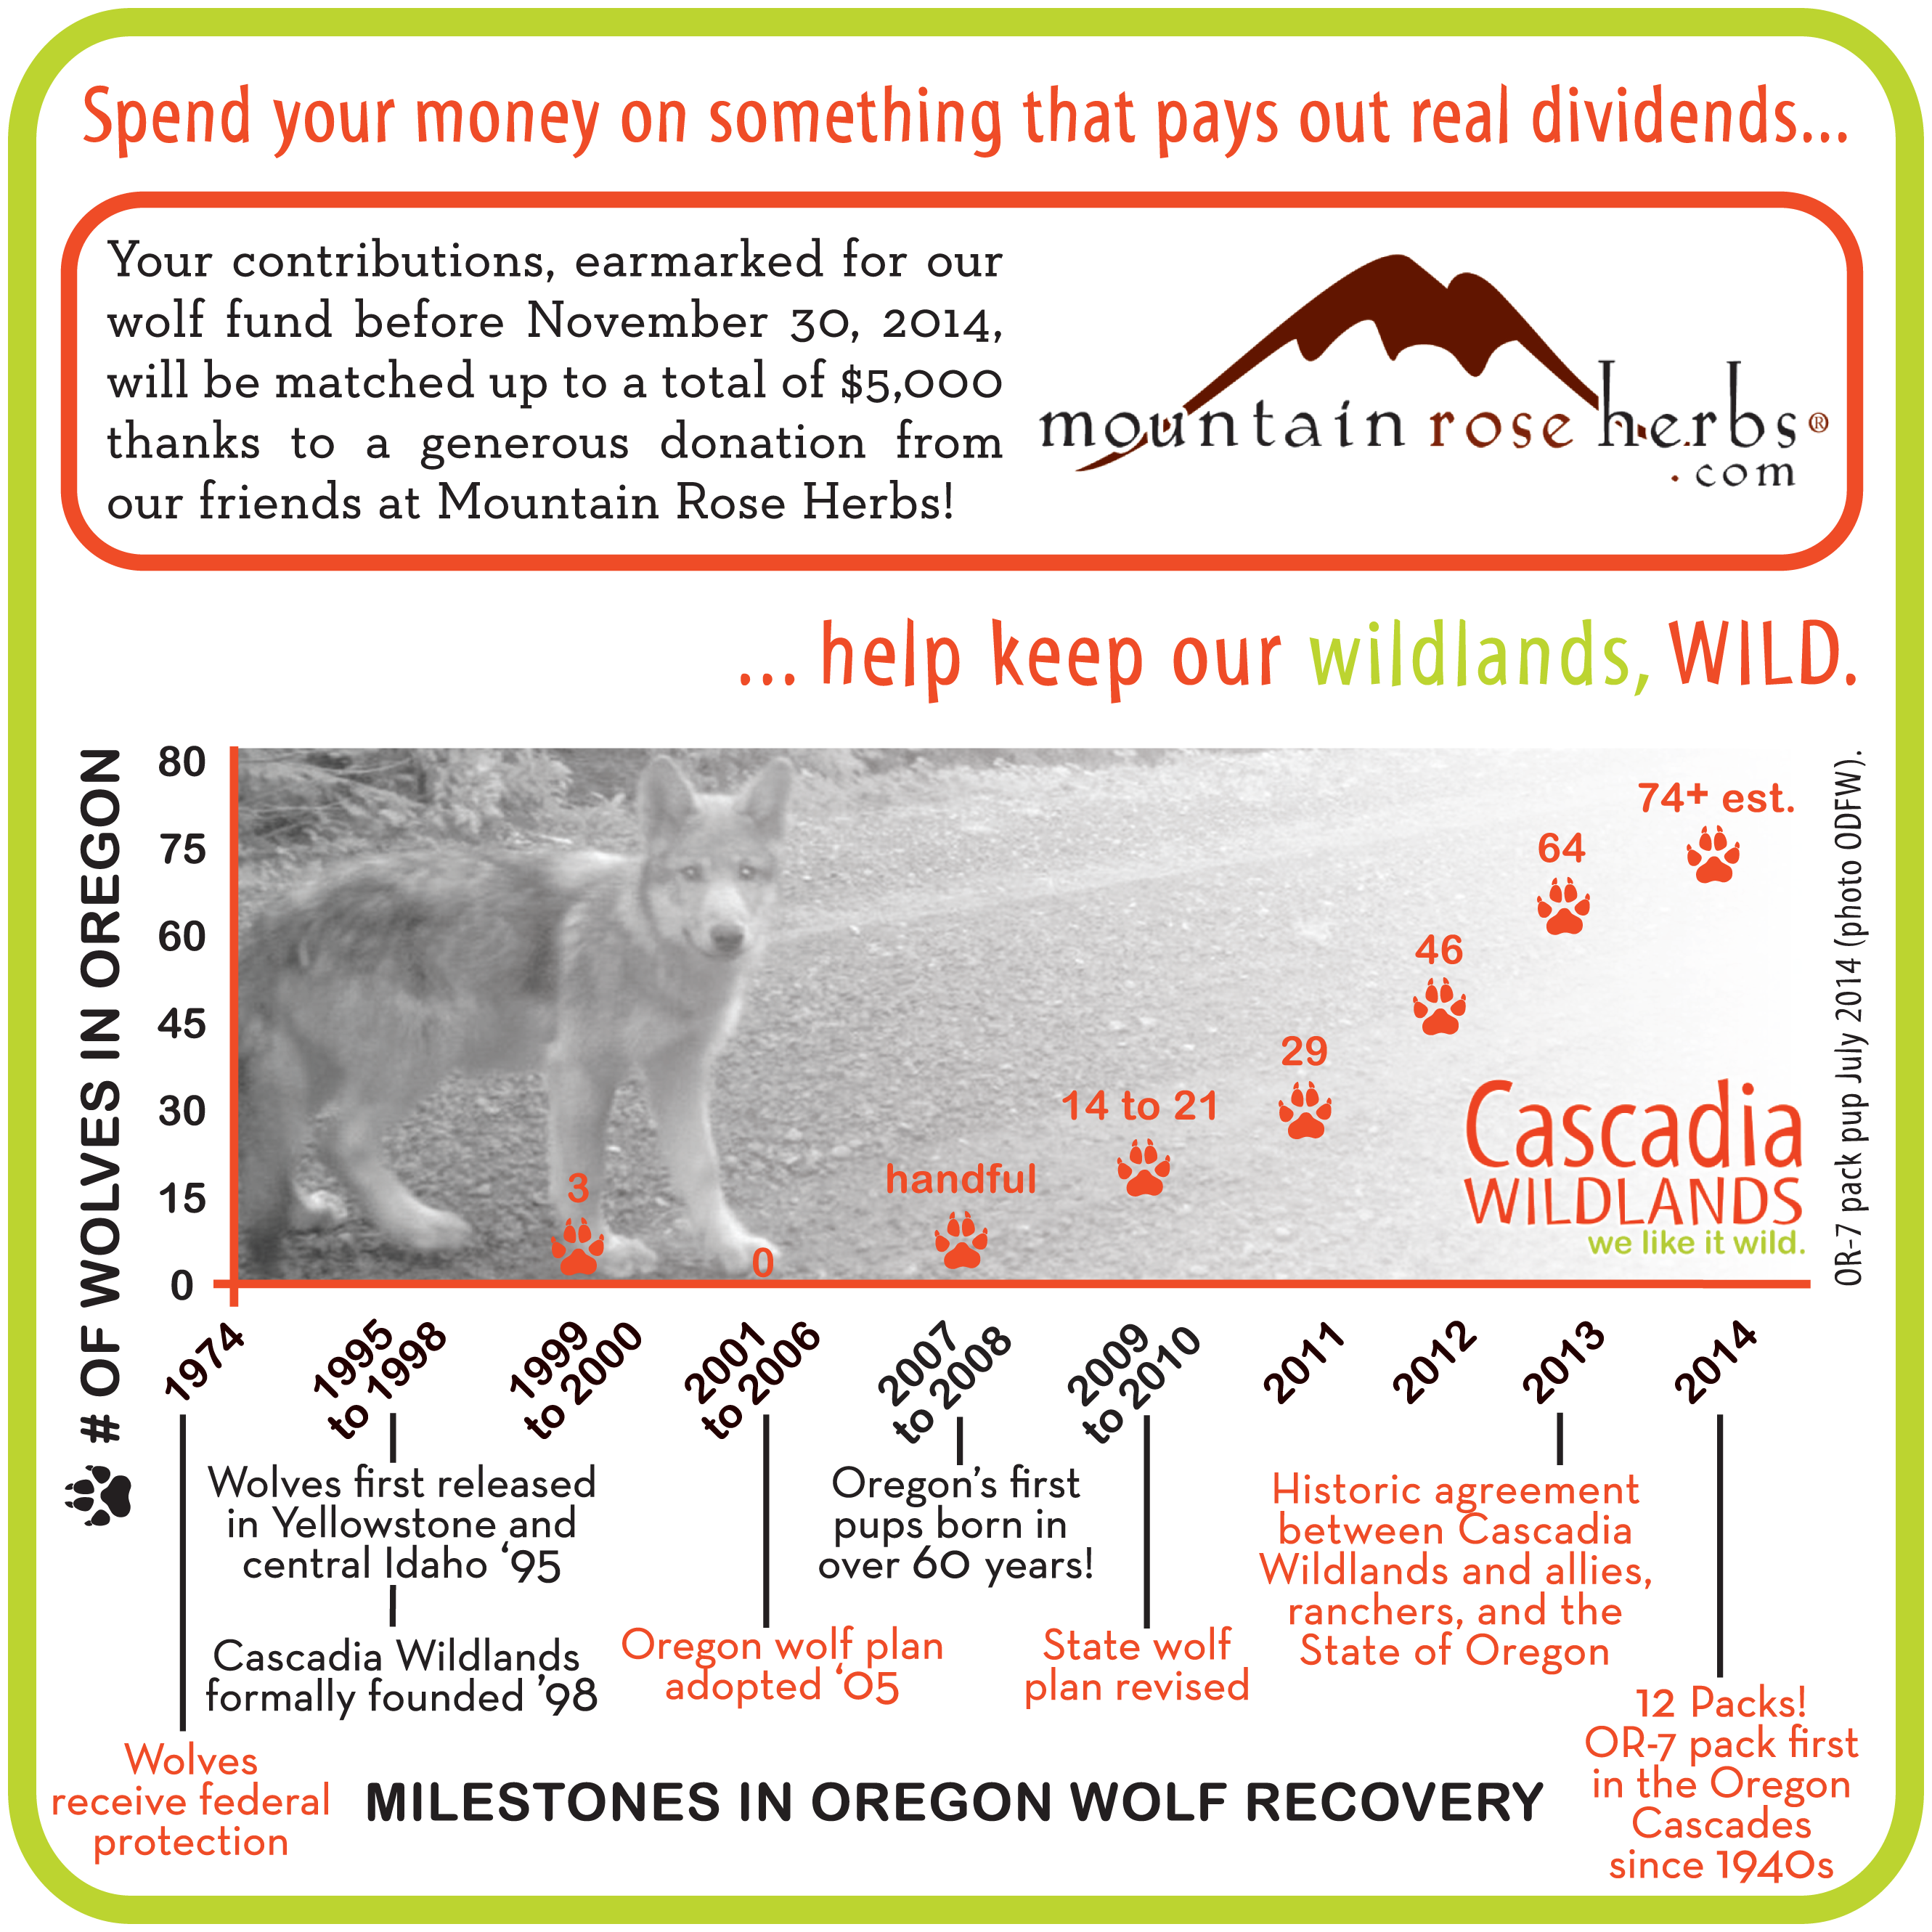 Donations_Wolf_MtnRoseHerbs_graph_DRAFT_C.3_21AugTry